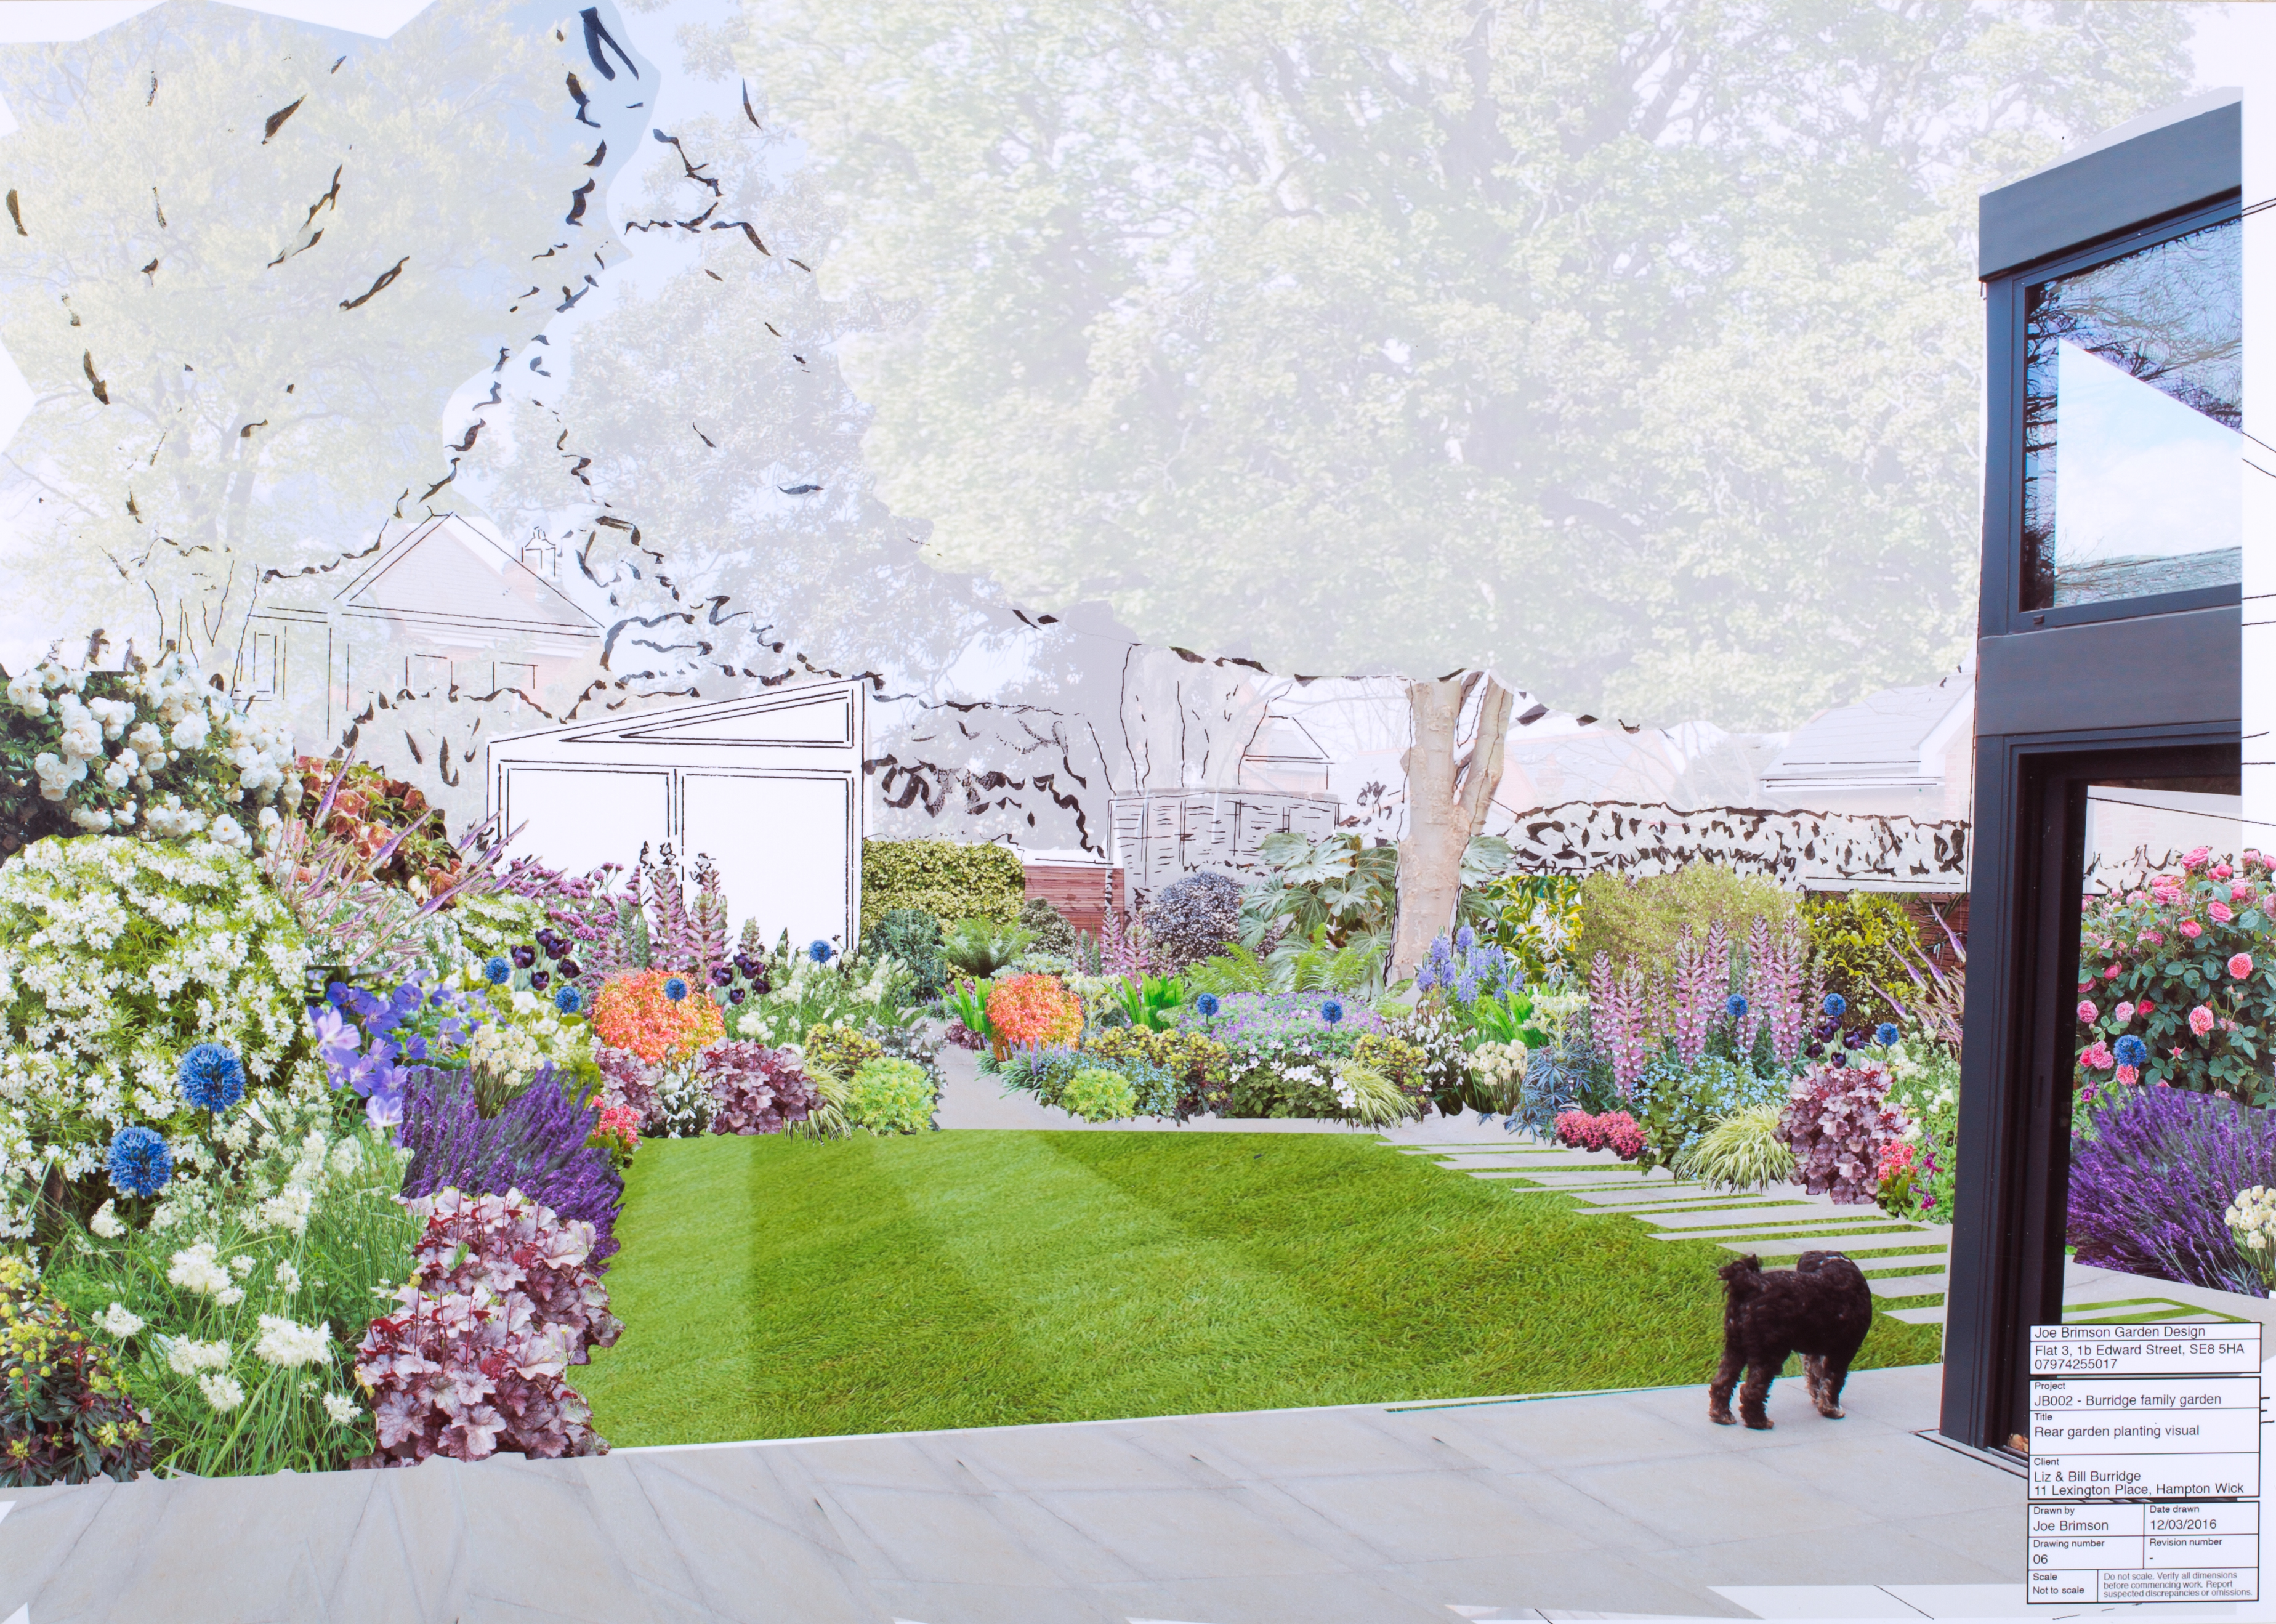 Joe Brimson Residential Garden Concept Visual